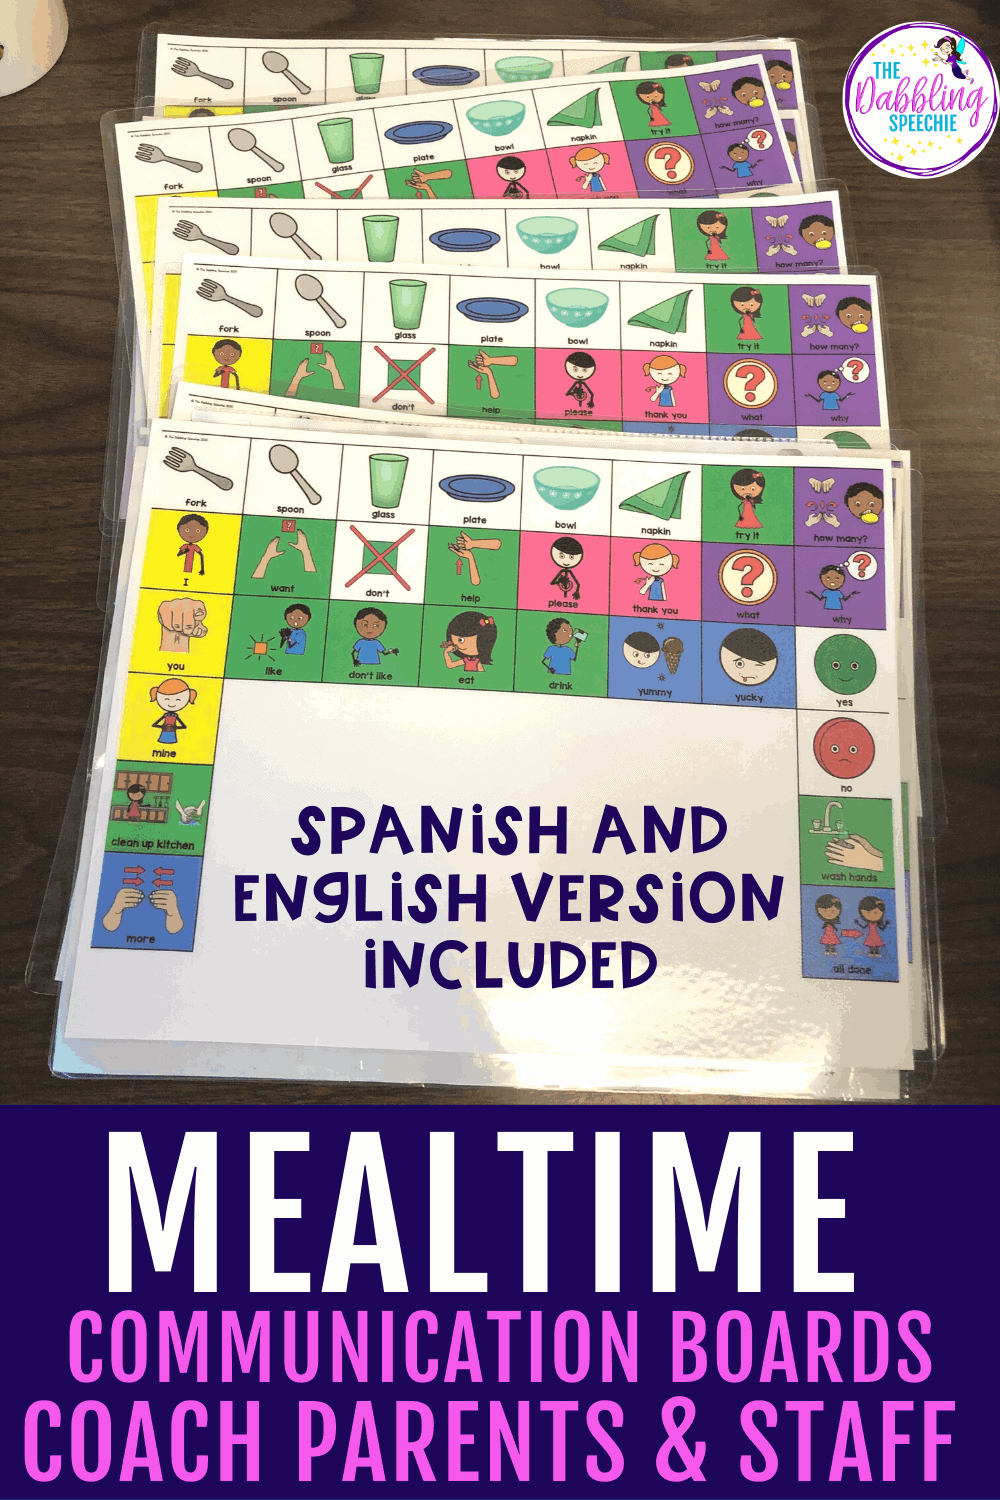 Mealtime AAC communication board free download to work on teaching communication functions at school or home. Coach parents with an easy to implement parent handout guide.